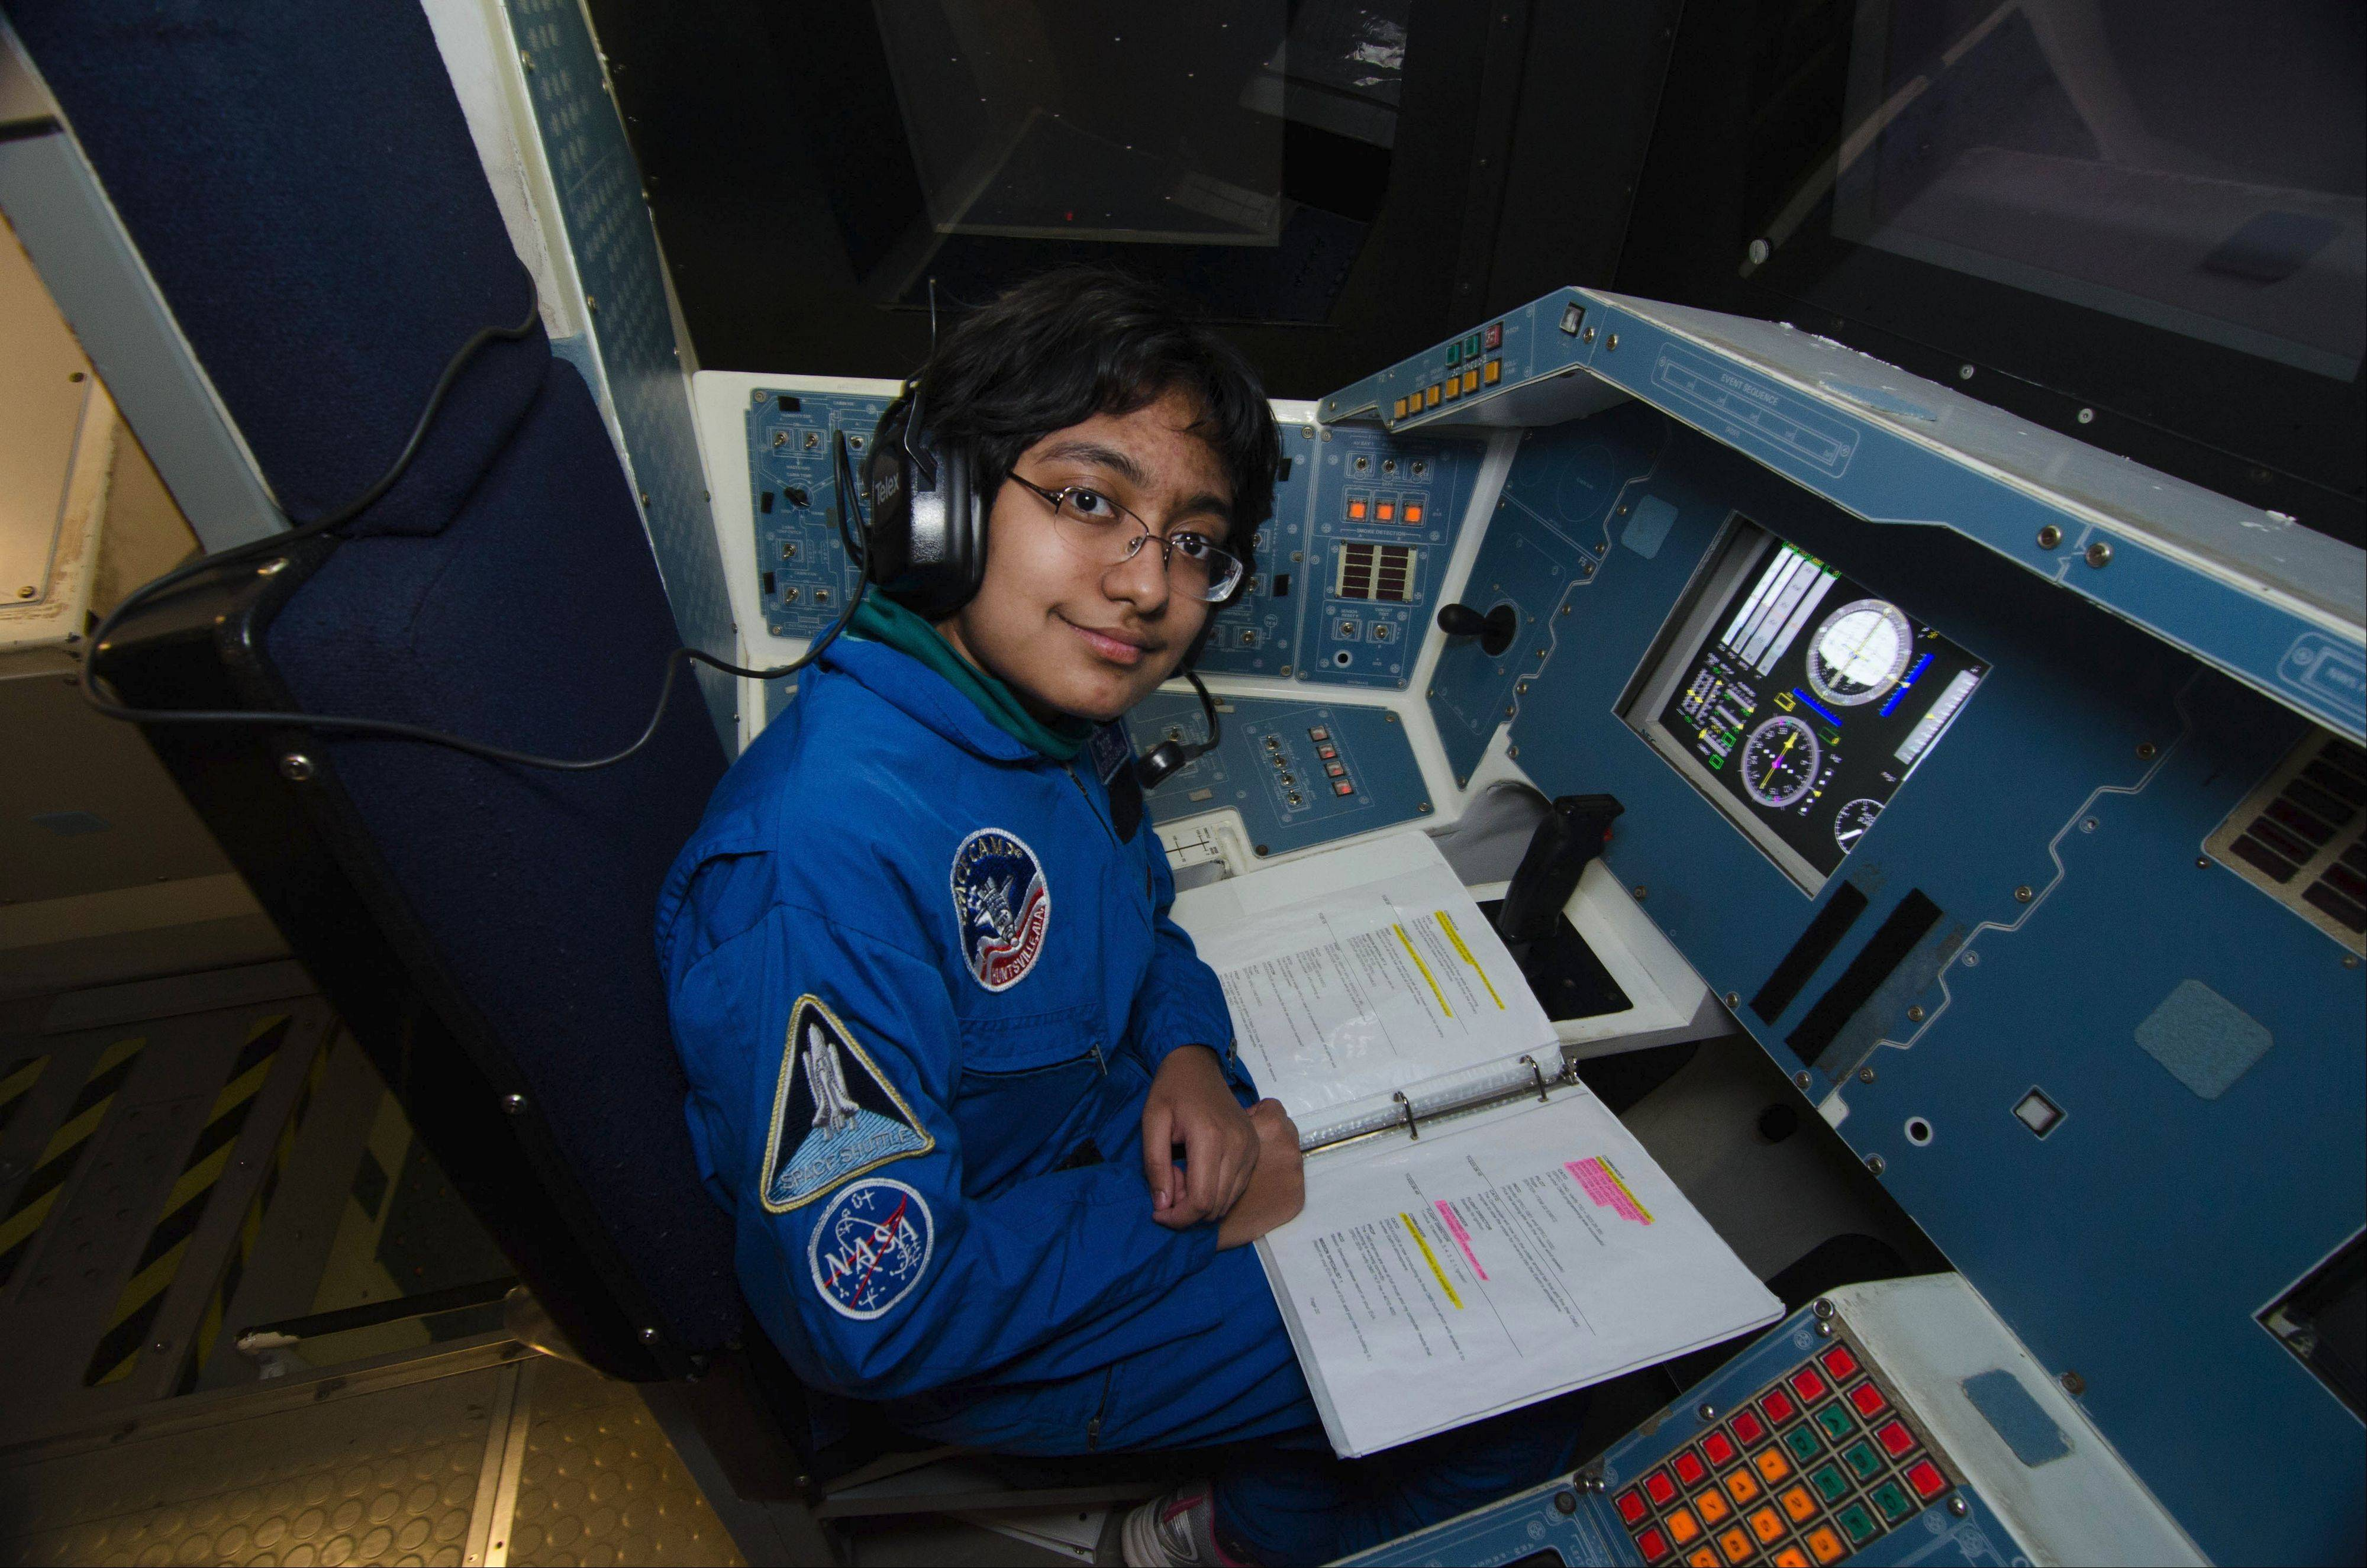 Parnita Harsh of Naperville pilots the shuttle simulator at the Honeywell Leadership Challenge.